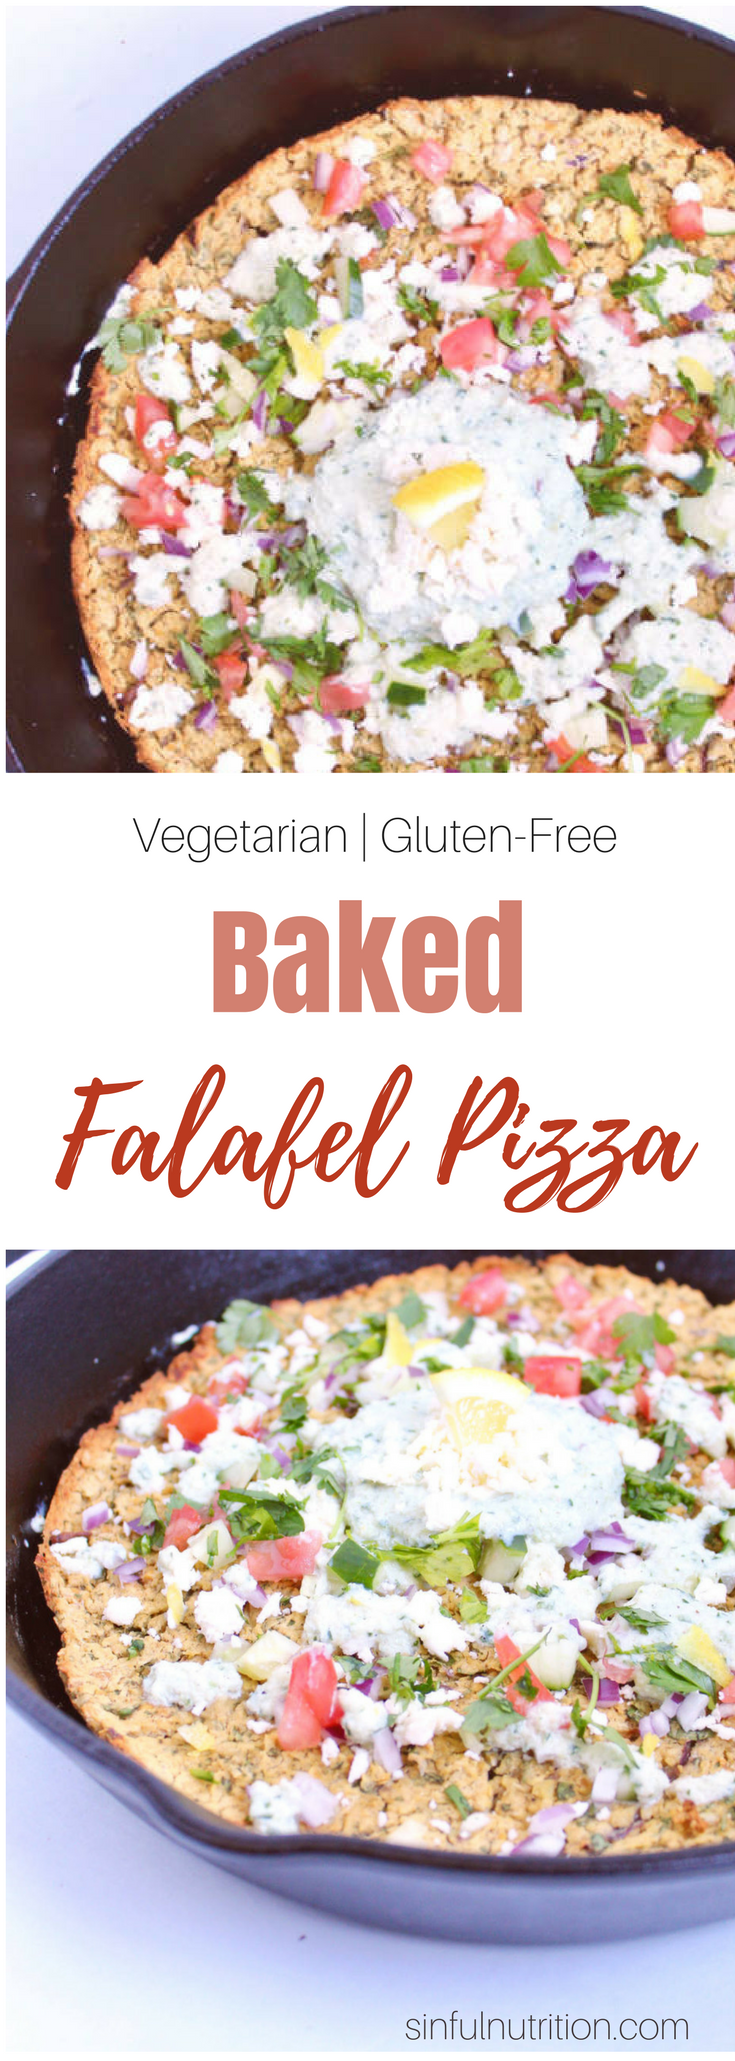 Baked Falafel Pizza with Lemon Tahini Tzatziki -- This healthy dinner recipe will change your falafel life! Served pizza-style topped with fresh veggies and herbs, and a creamy tzatziki sauce. | @sinfulnutrition | Vegetarian | Gluten-Free